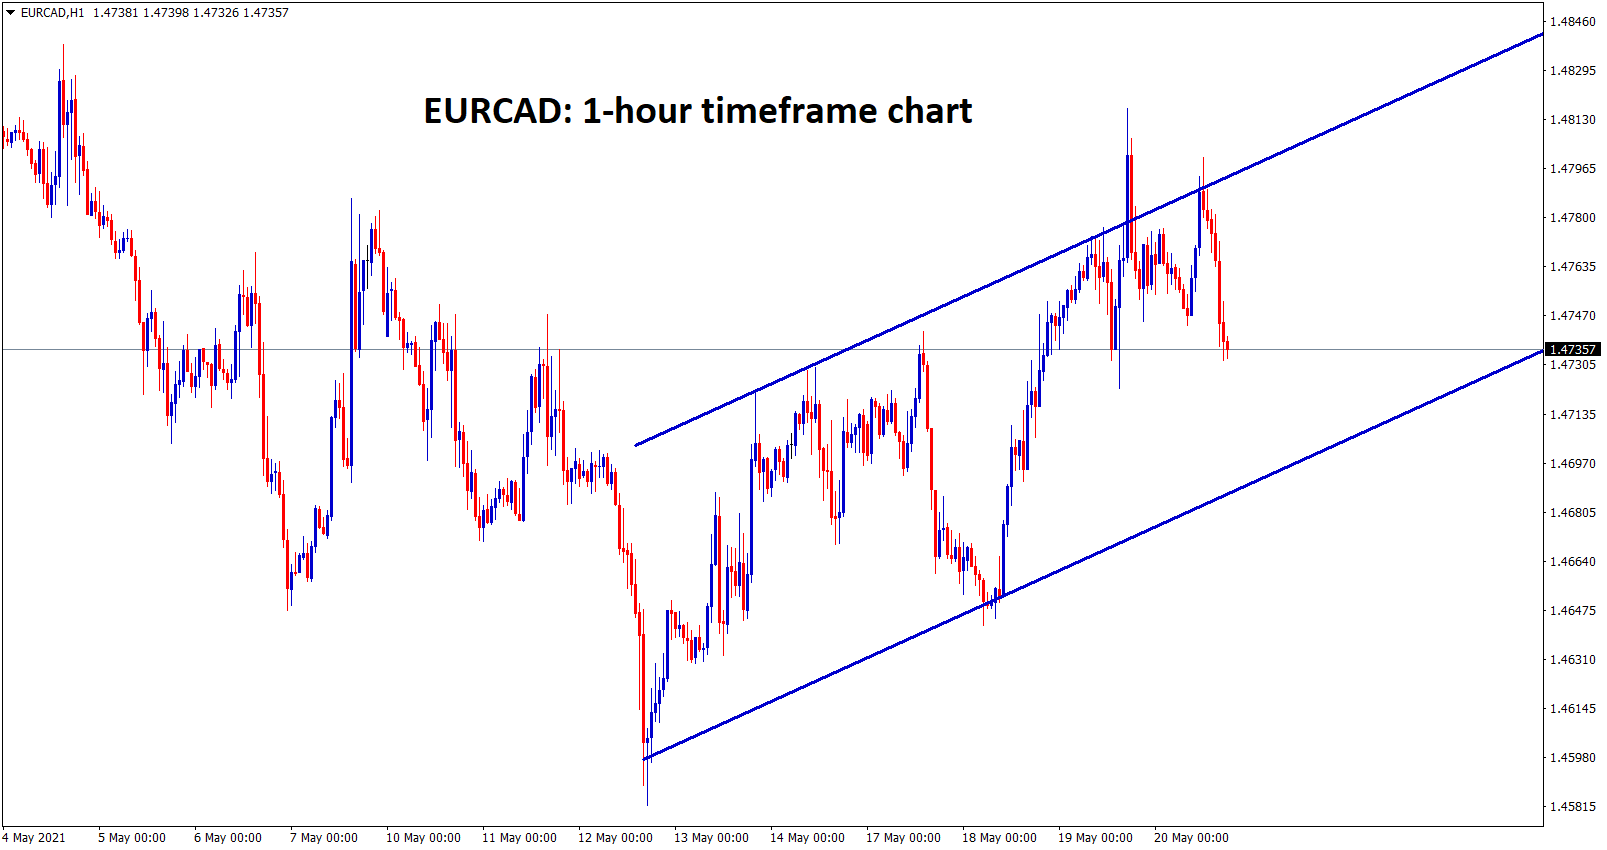 EURCAD is moving in an Ascending channel range.